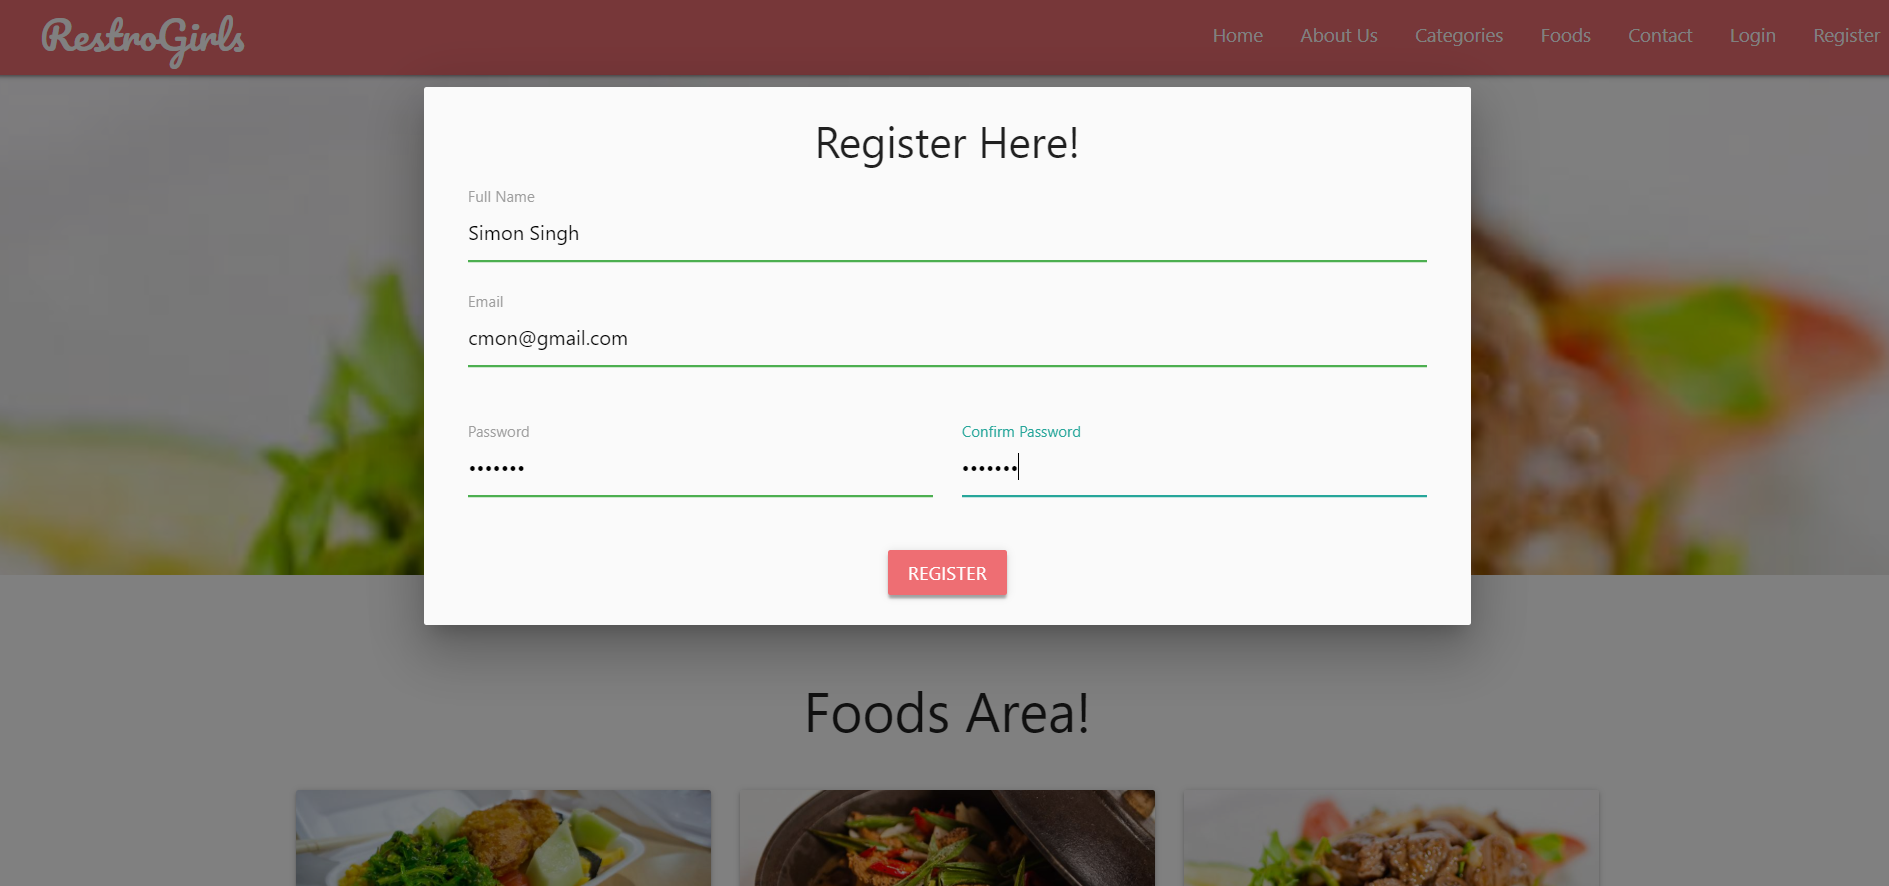 image of online restaurant management system